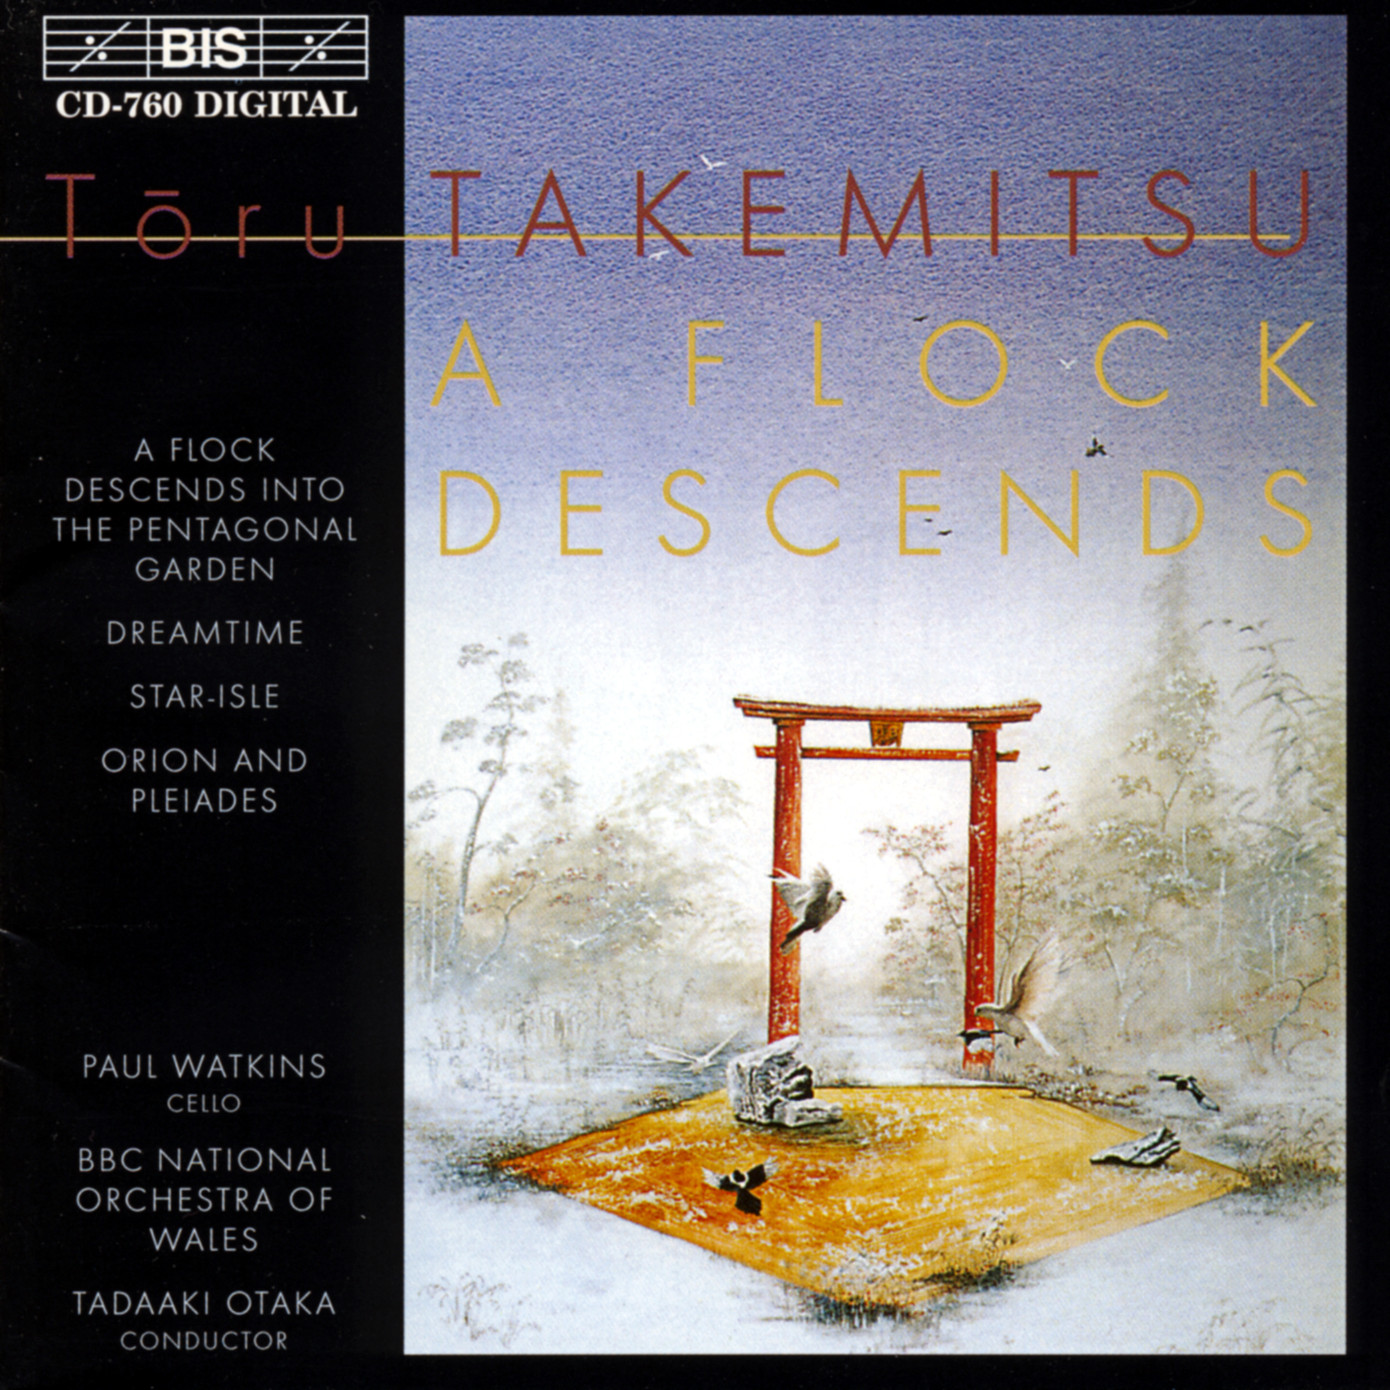 Takemitsu - Paul Watkins, BBC National Orchestra Of Wales, Tadaaki Otaka A Flock Descends CD